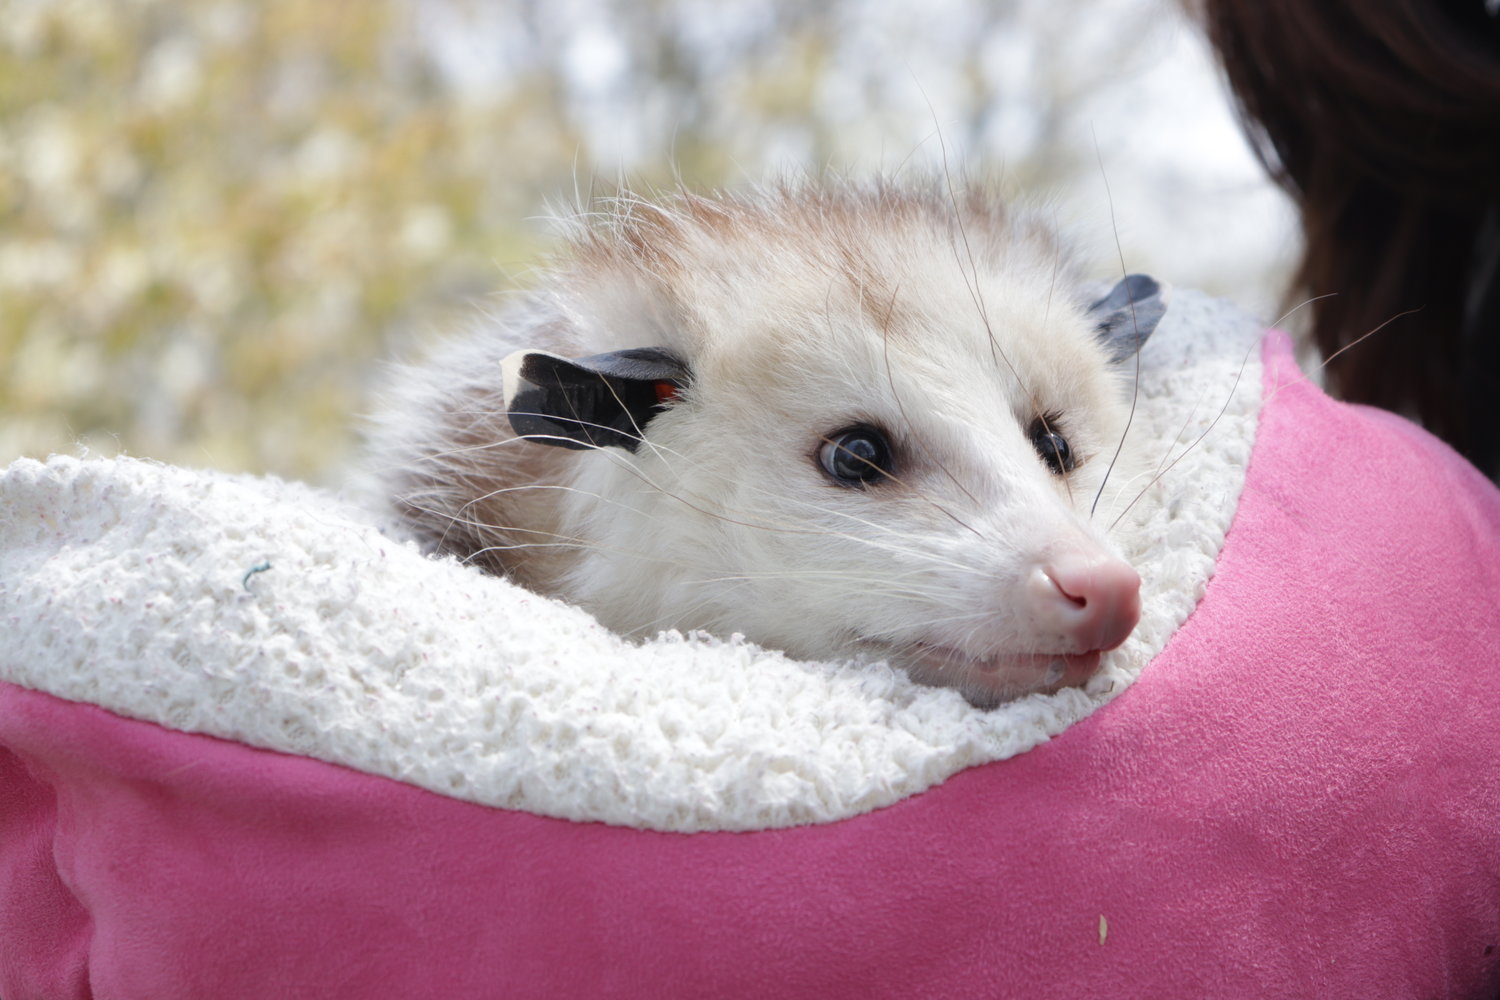 Visitors were encouraged to love opossums instead of fearing them as they greeted Clover, one of Tackapausha's newest inhabitants.